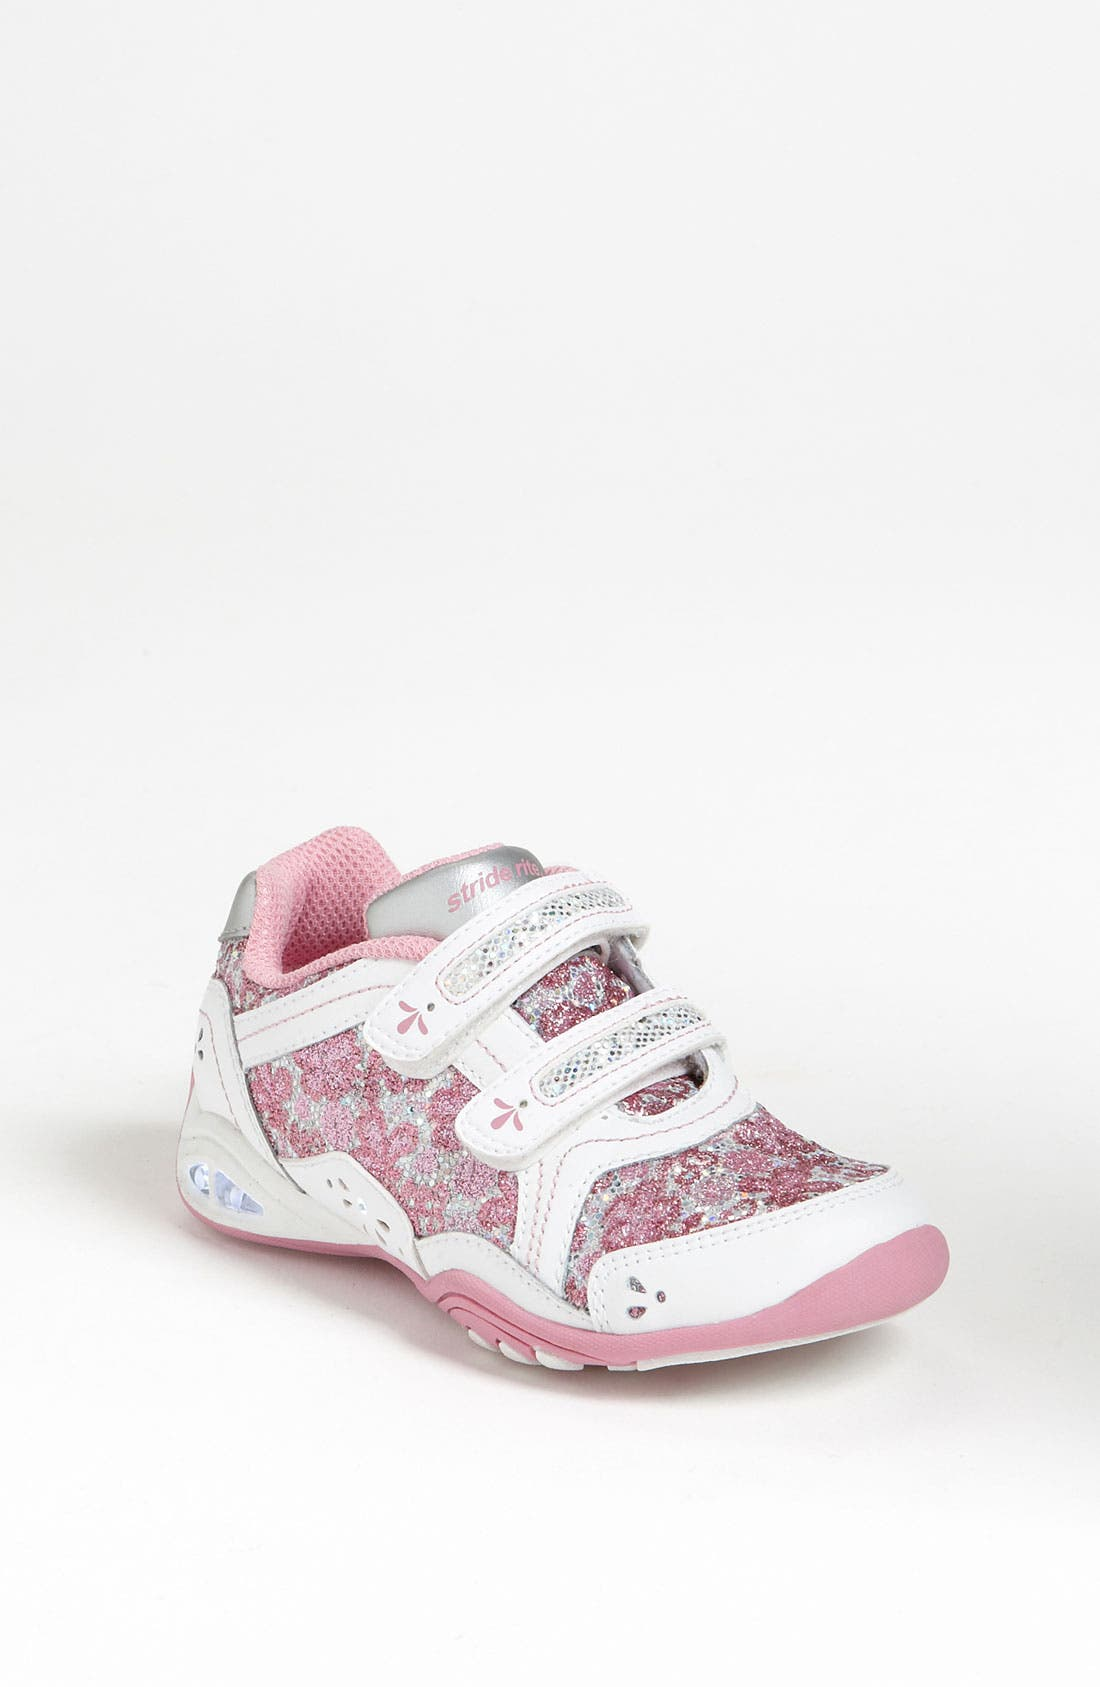 Alternate Image 1 Selected - Stride Rite 'Jade' Sneaker (Walker, Toddler & Little Kid)